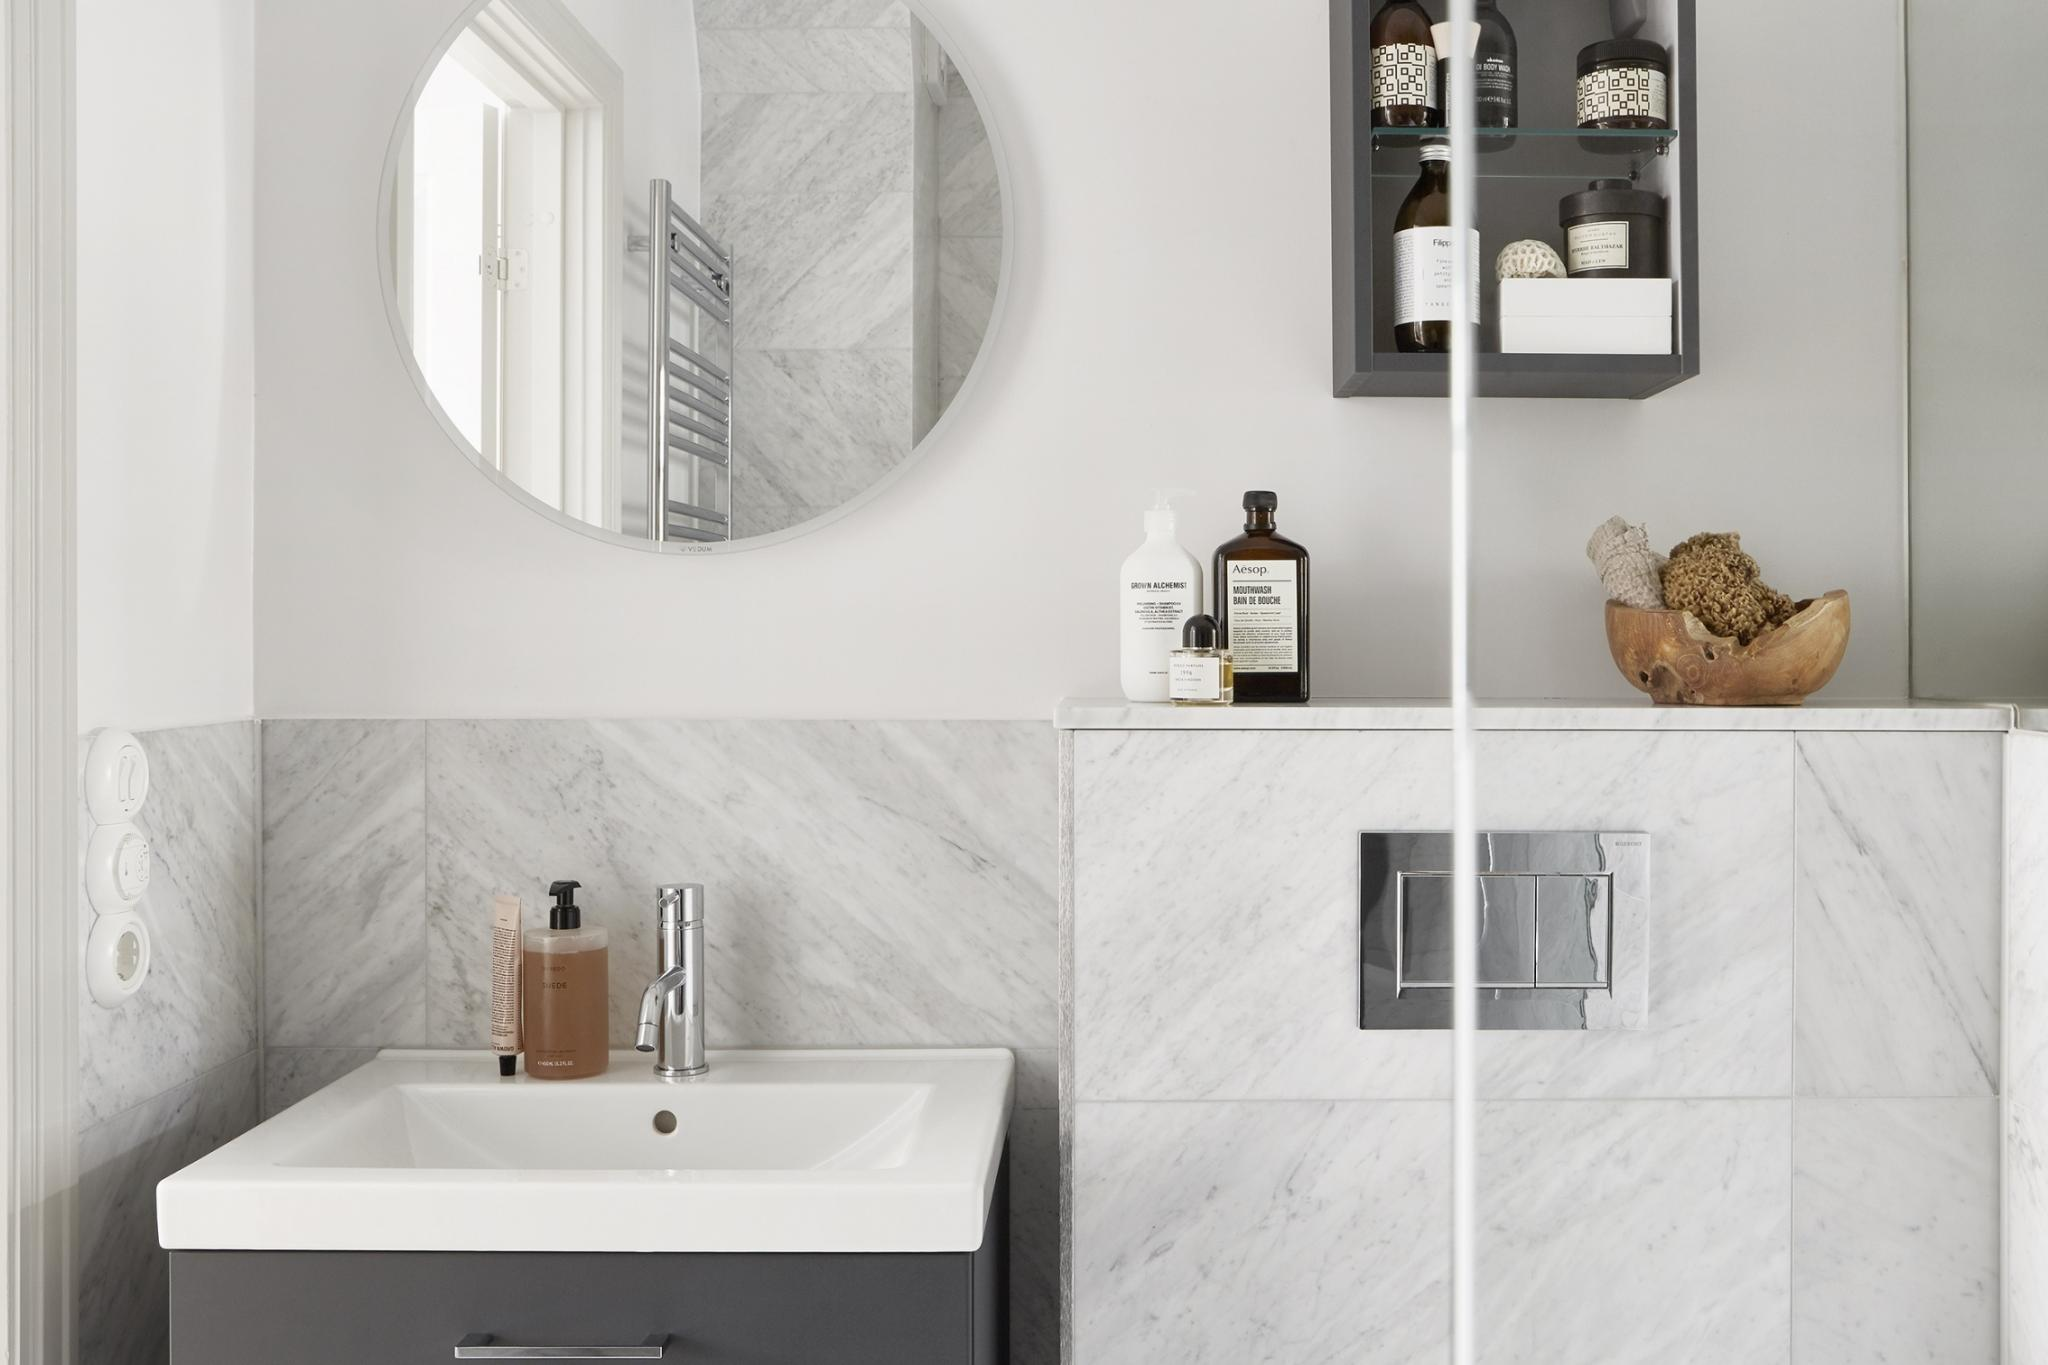 Bathroom in small Stockholm apartment